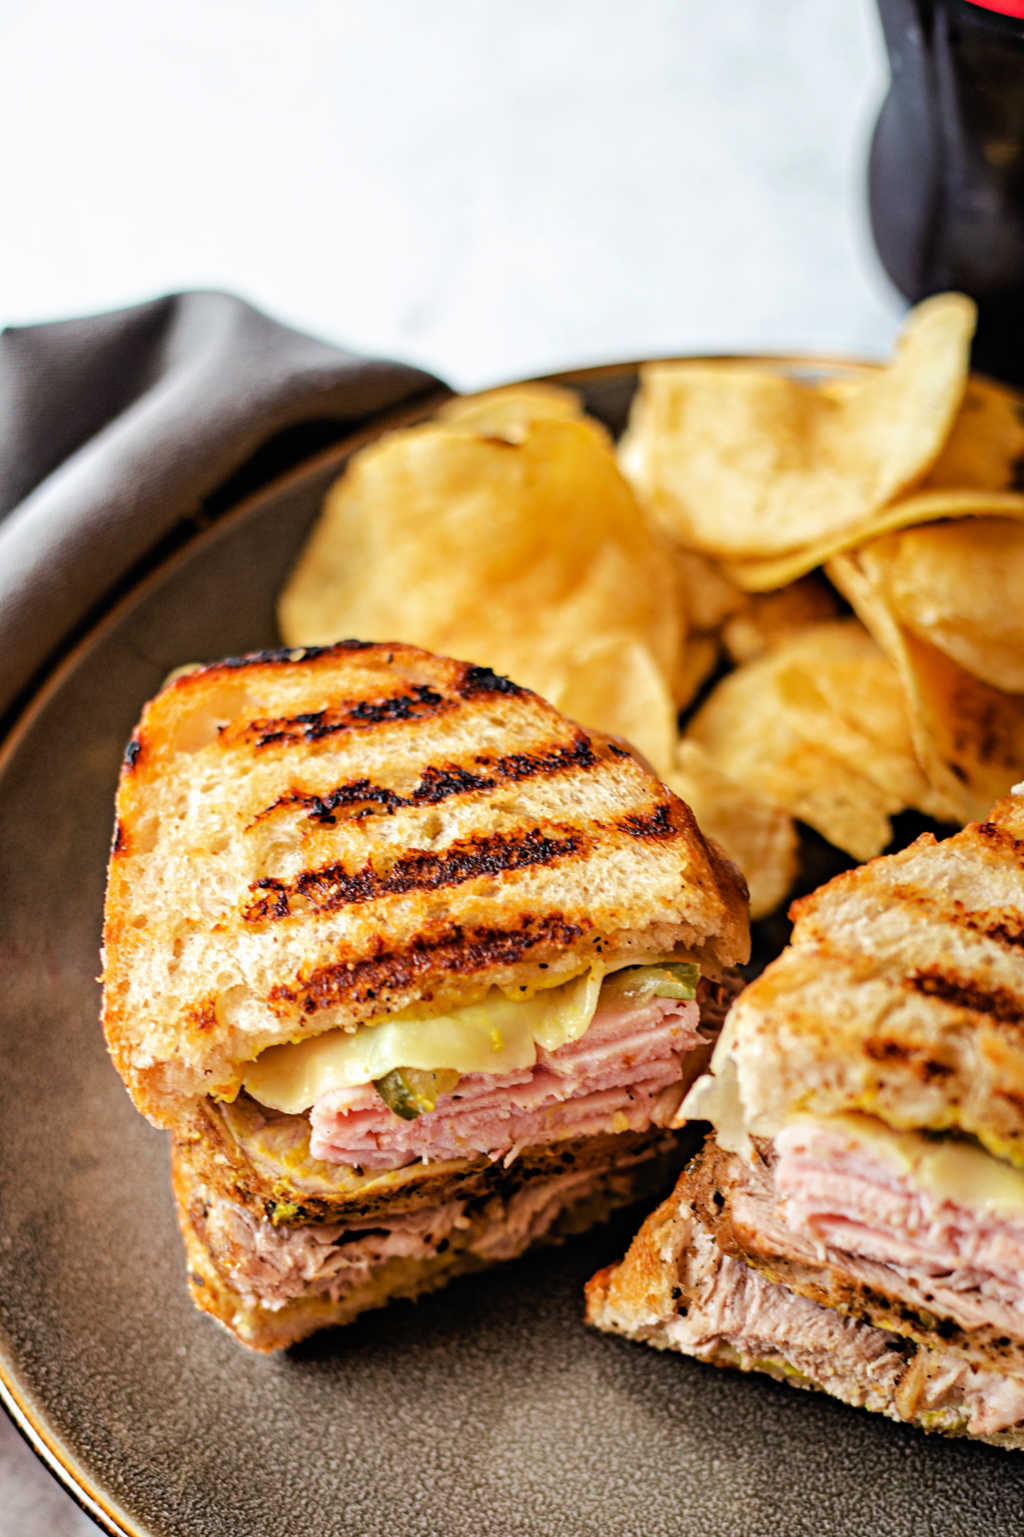 Sandwich Cubano on a plate with potato chips.